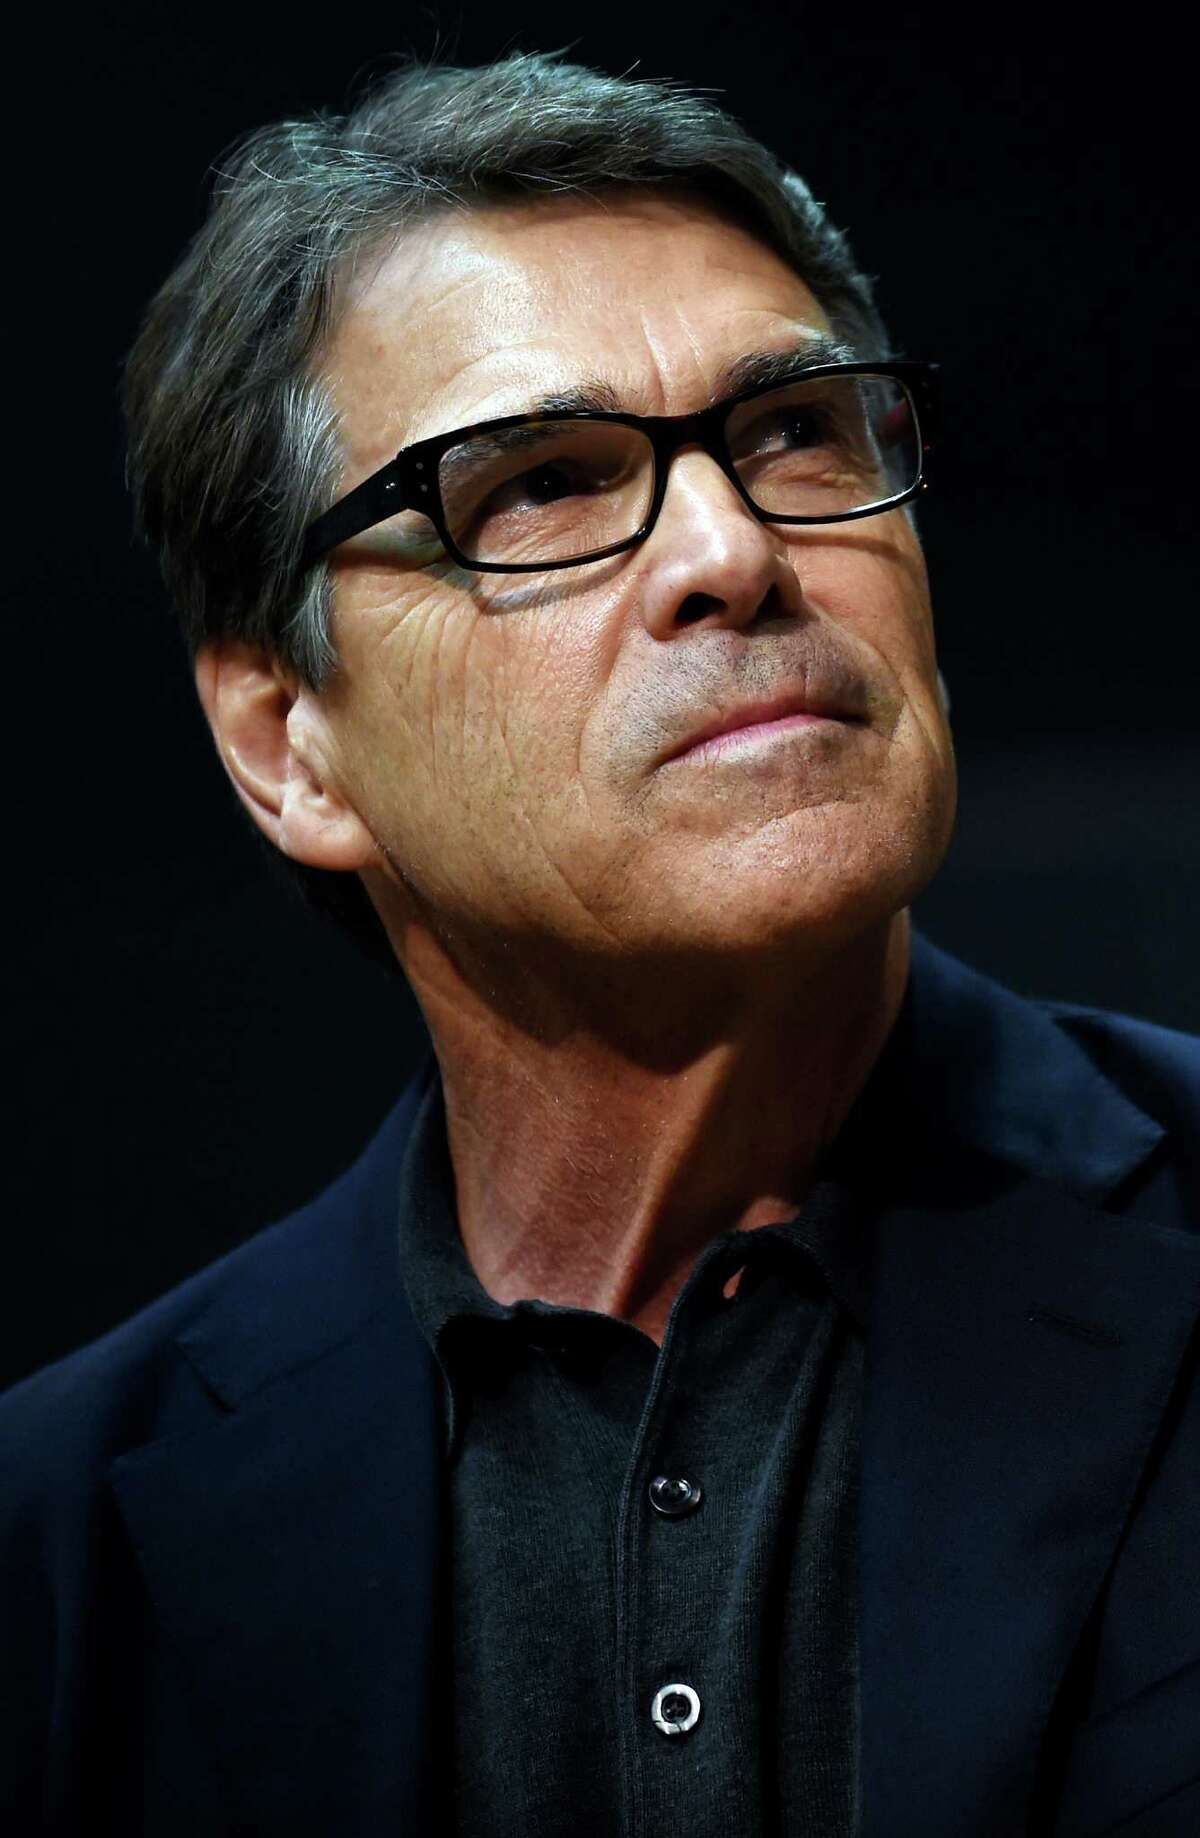 Republican presidential candidate, former Texas Gov. Rick Perry listens during a campaign stop at Anderson Christian School on Thursday, Aug. 13, 2015, in Anderson, S.C. (AP Photo/Rainier Ehrhardt)